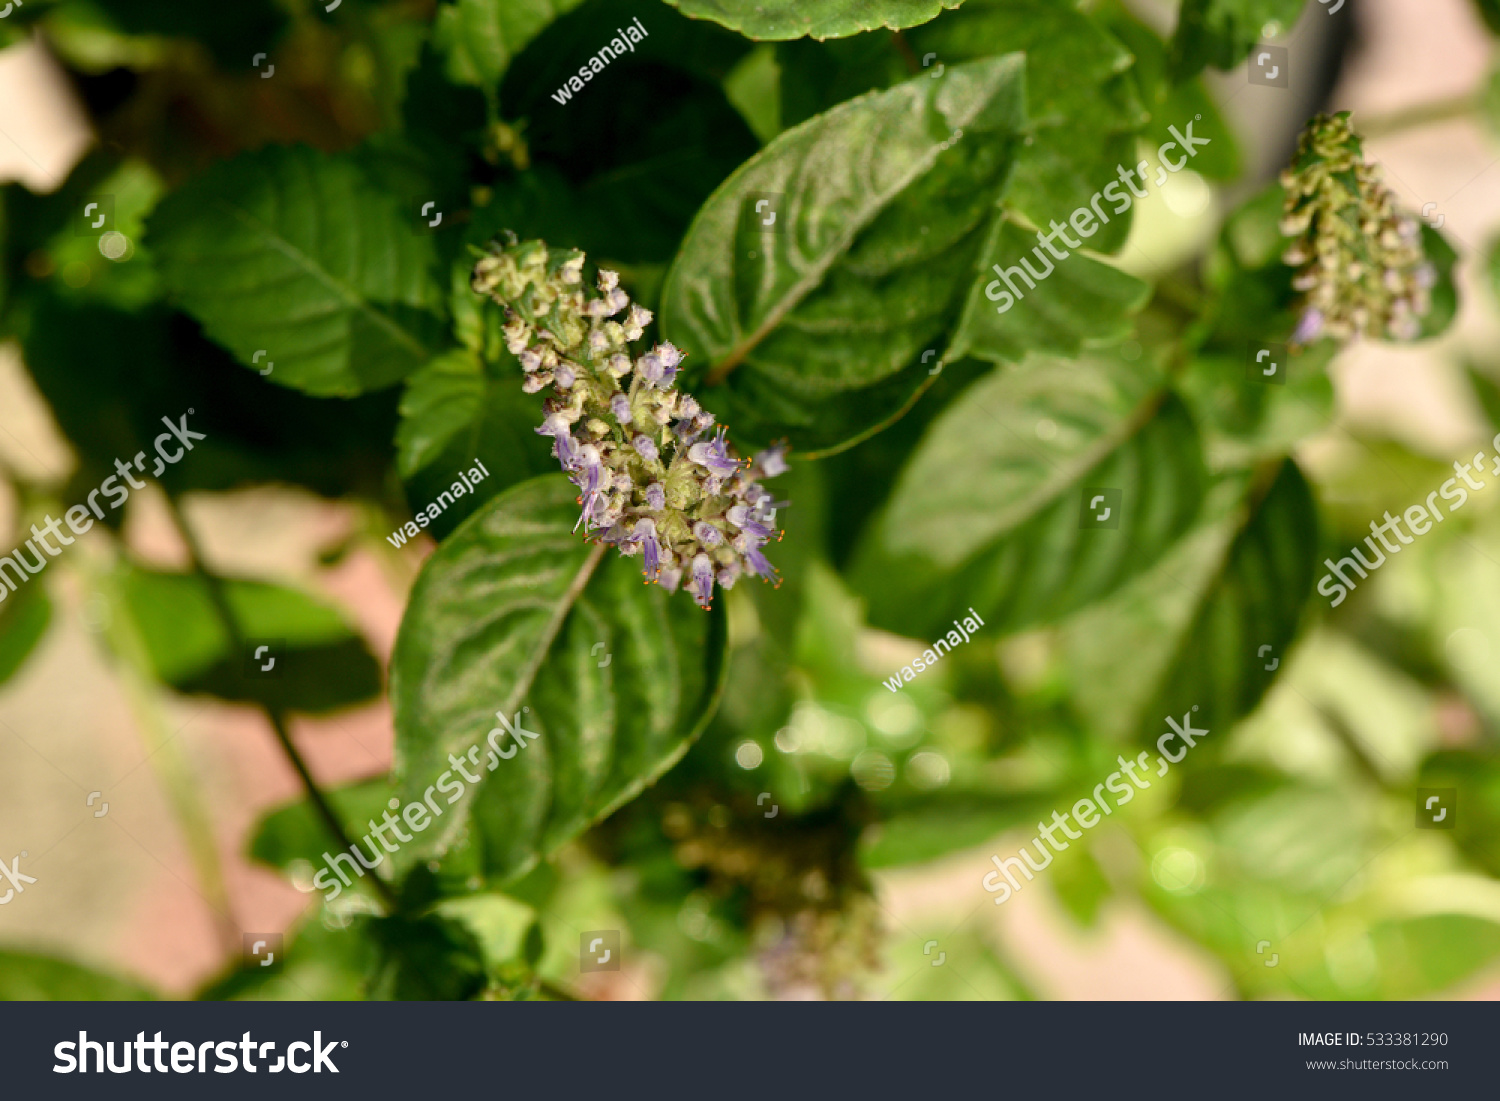 Natural Way To Get Rid Of Aphids On Basil